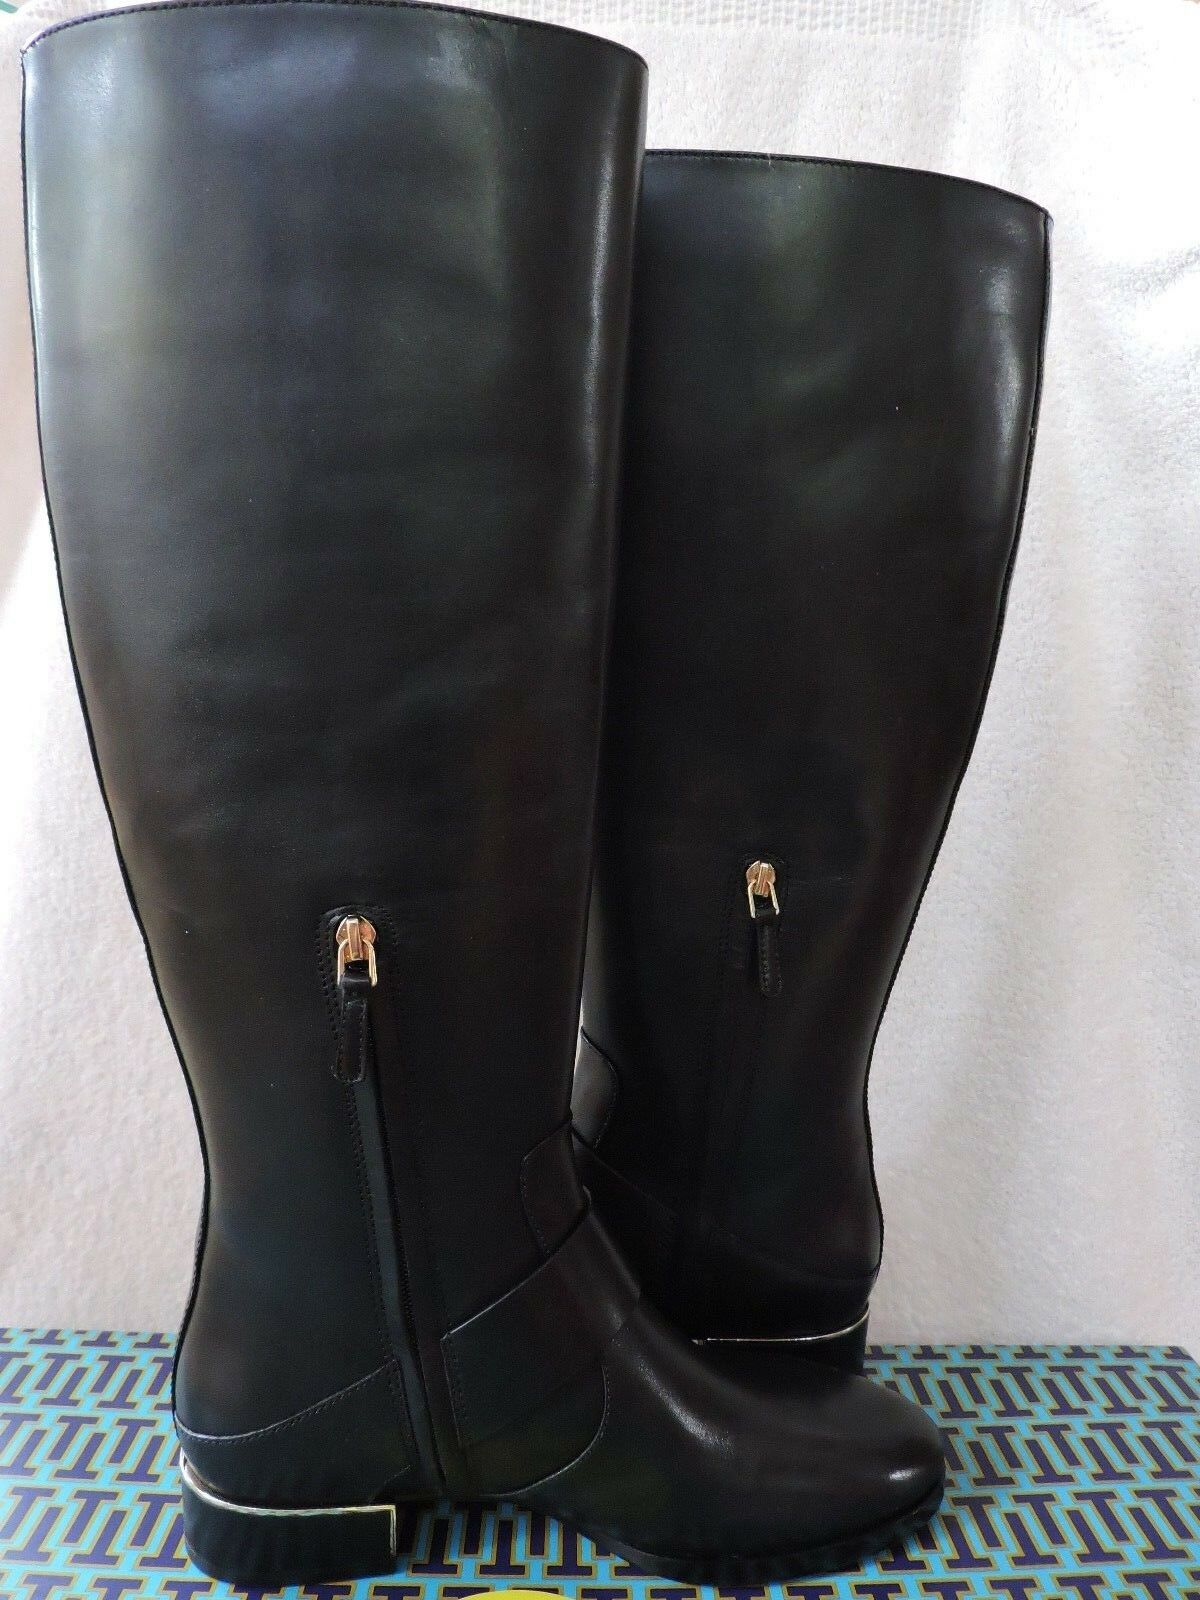 NEW $498 TORY BLACK BURCH SOFIA RIDING BOOT LEATHER KNEE BLACK TORY LOGO 9 19571d